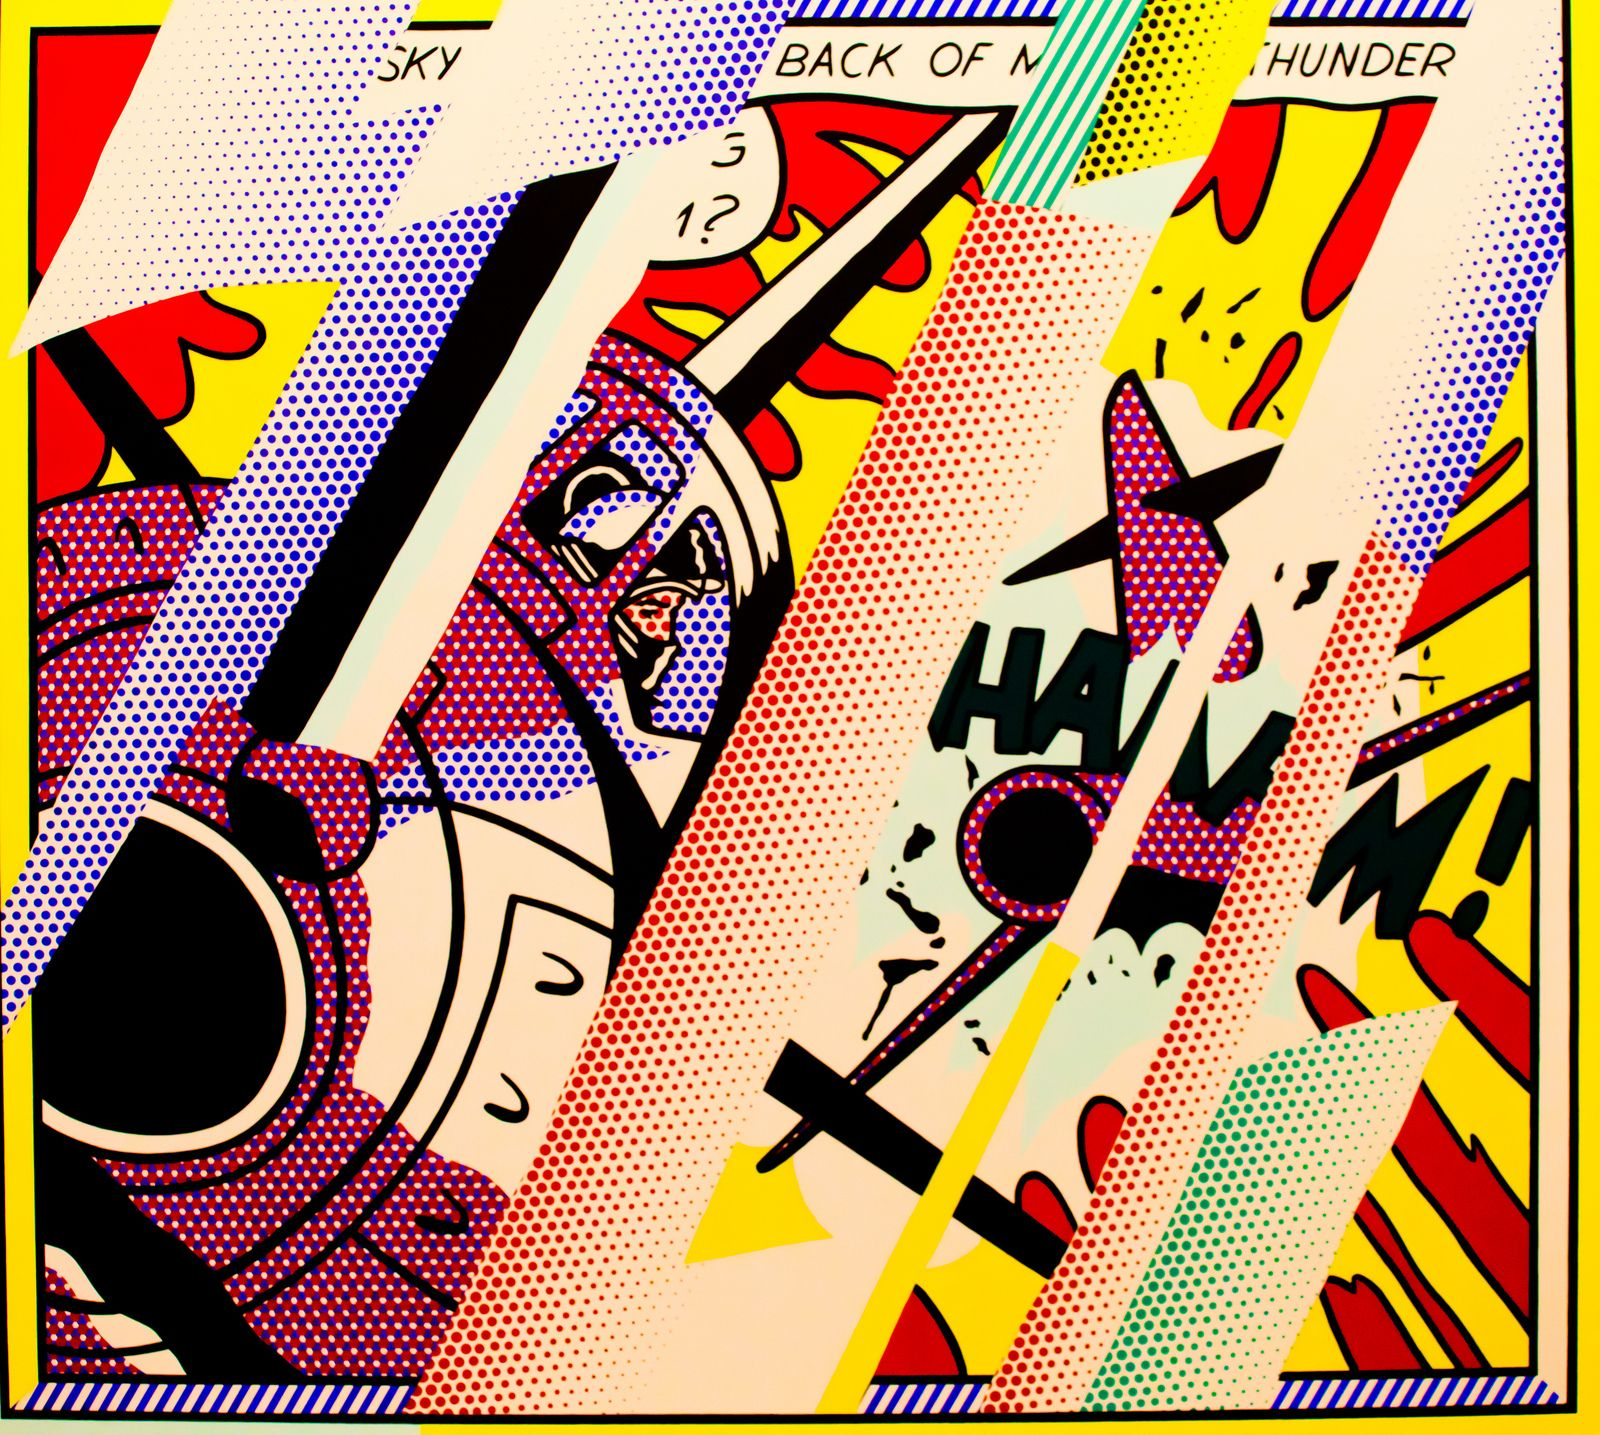 Not Enough Talk Talk (With images) Roy lichtenstein